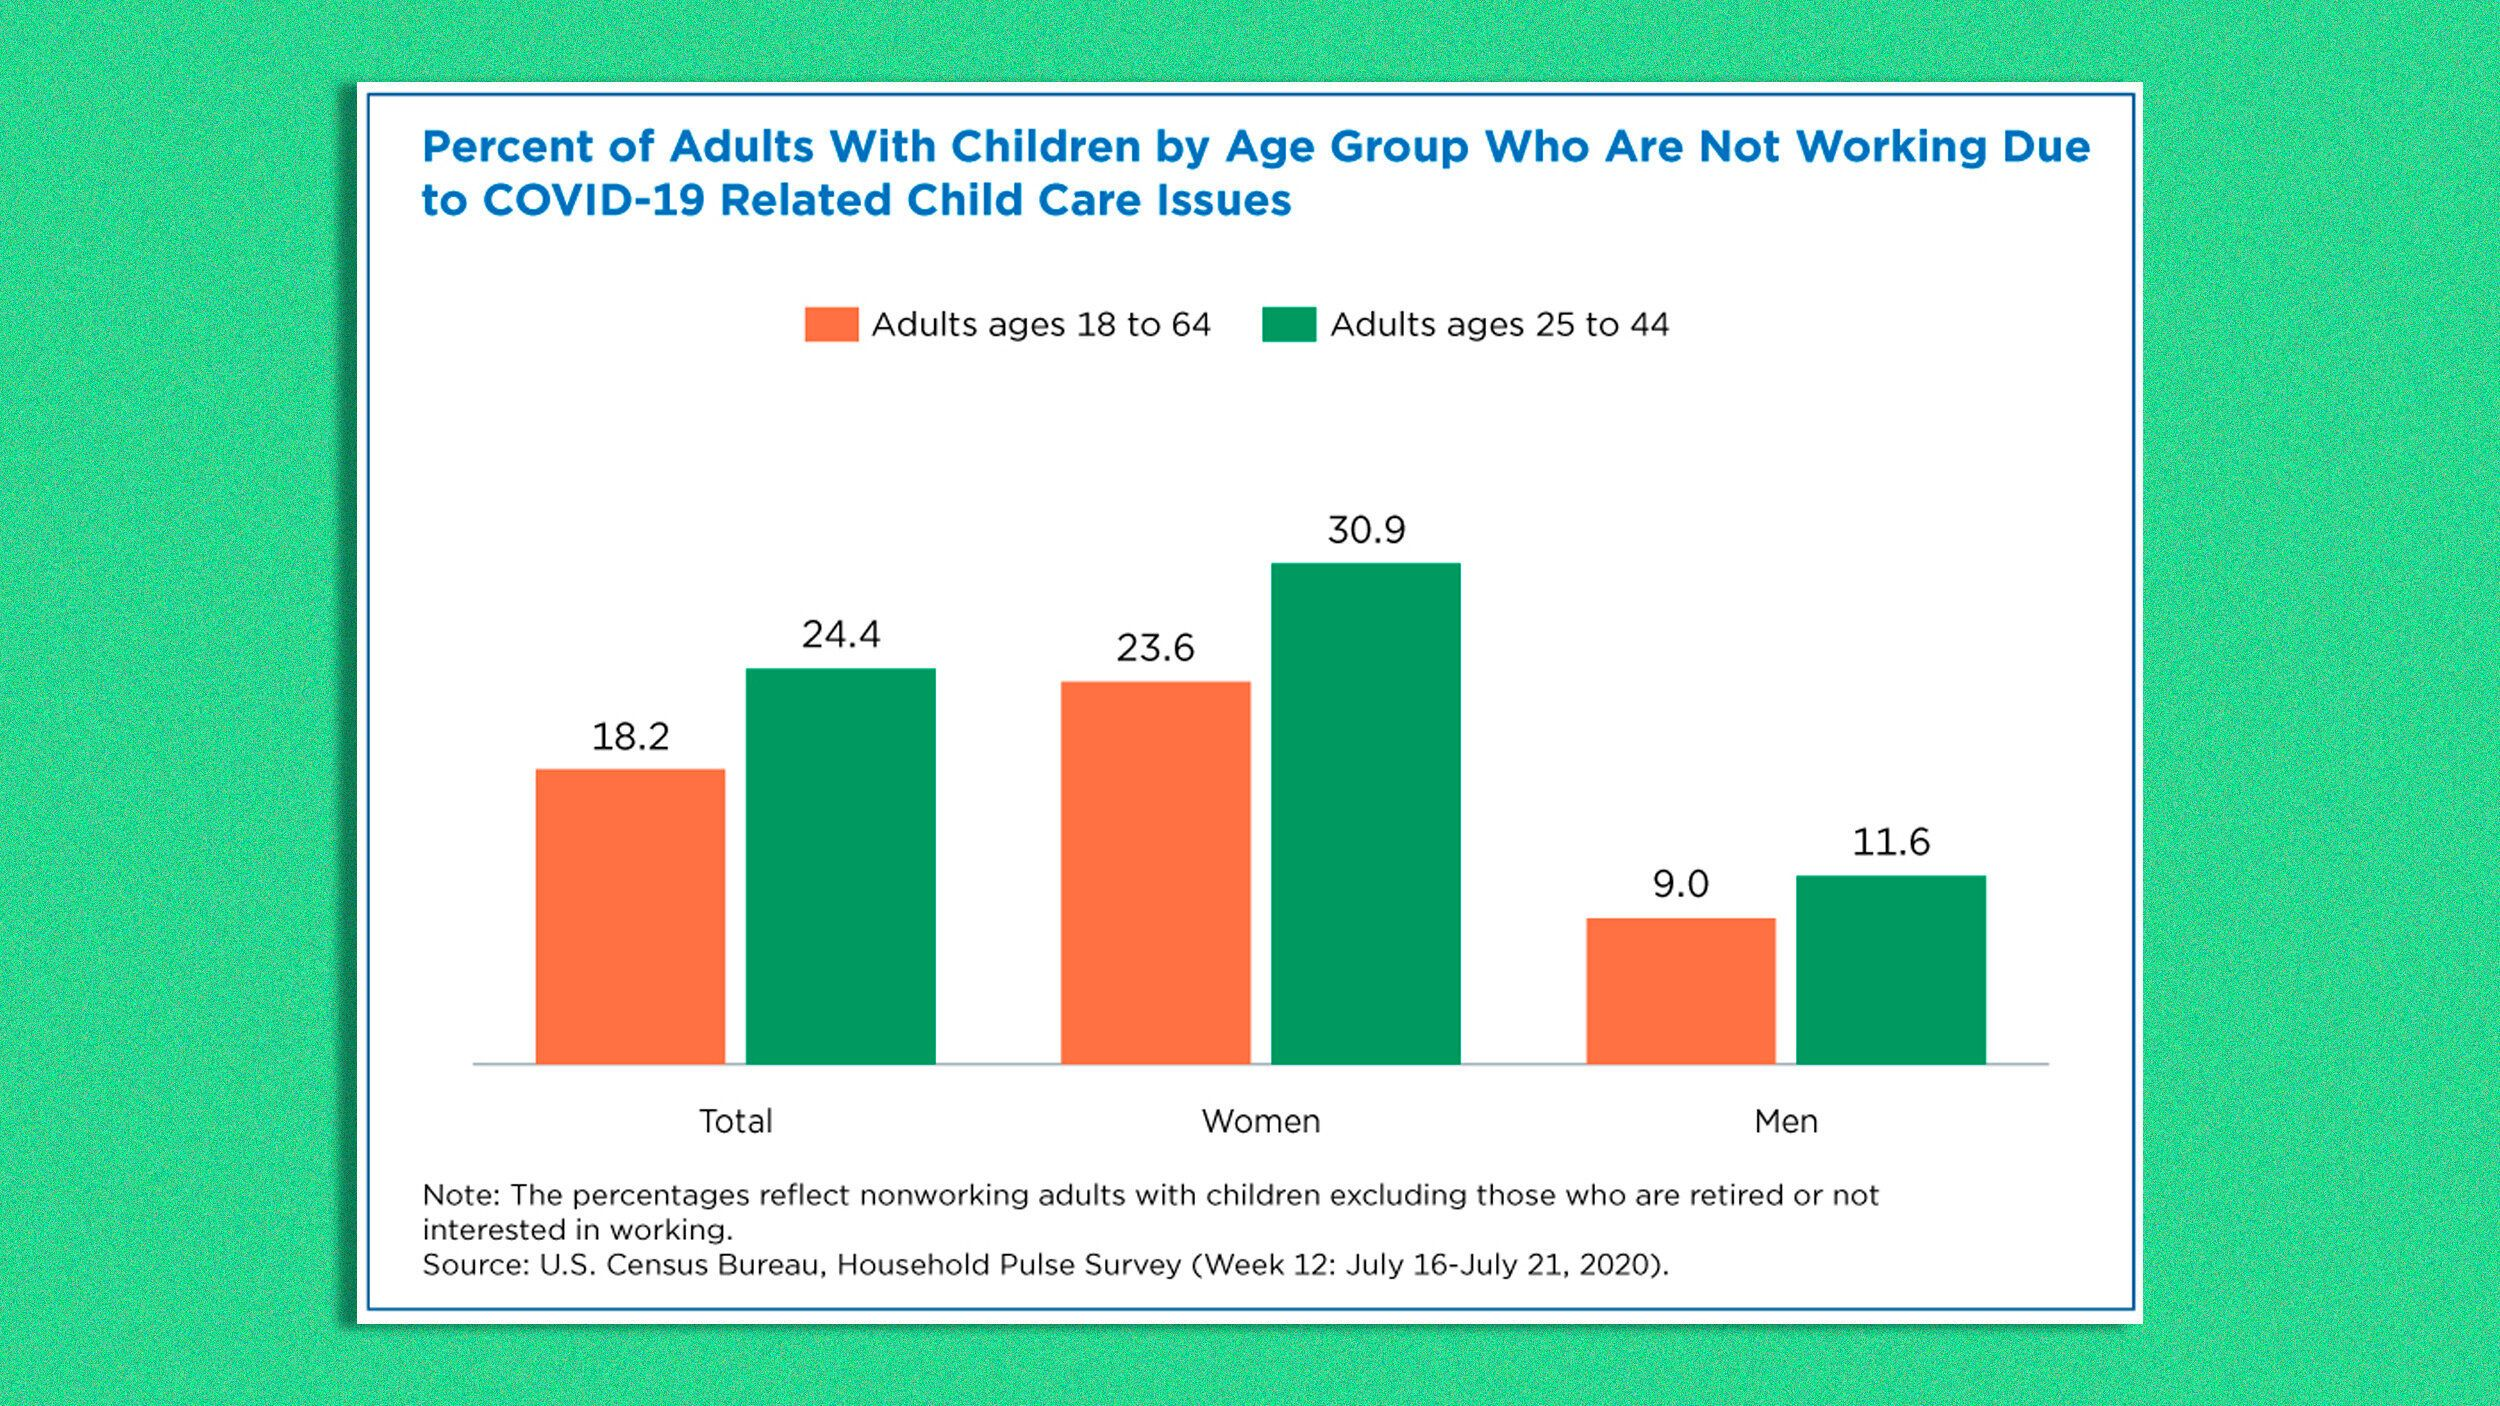 Percentage of adults with children not working because of COVID-related issues.